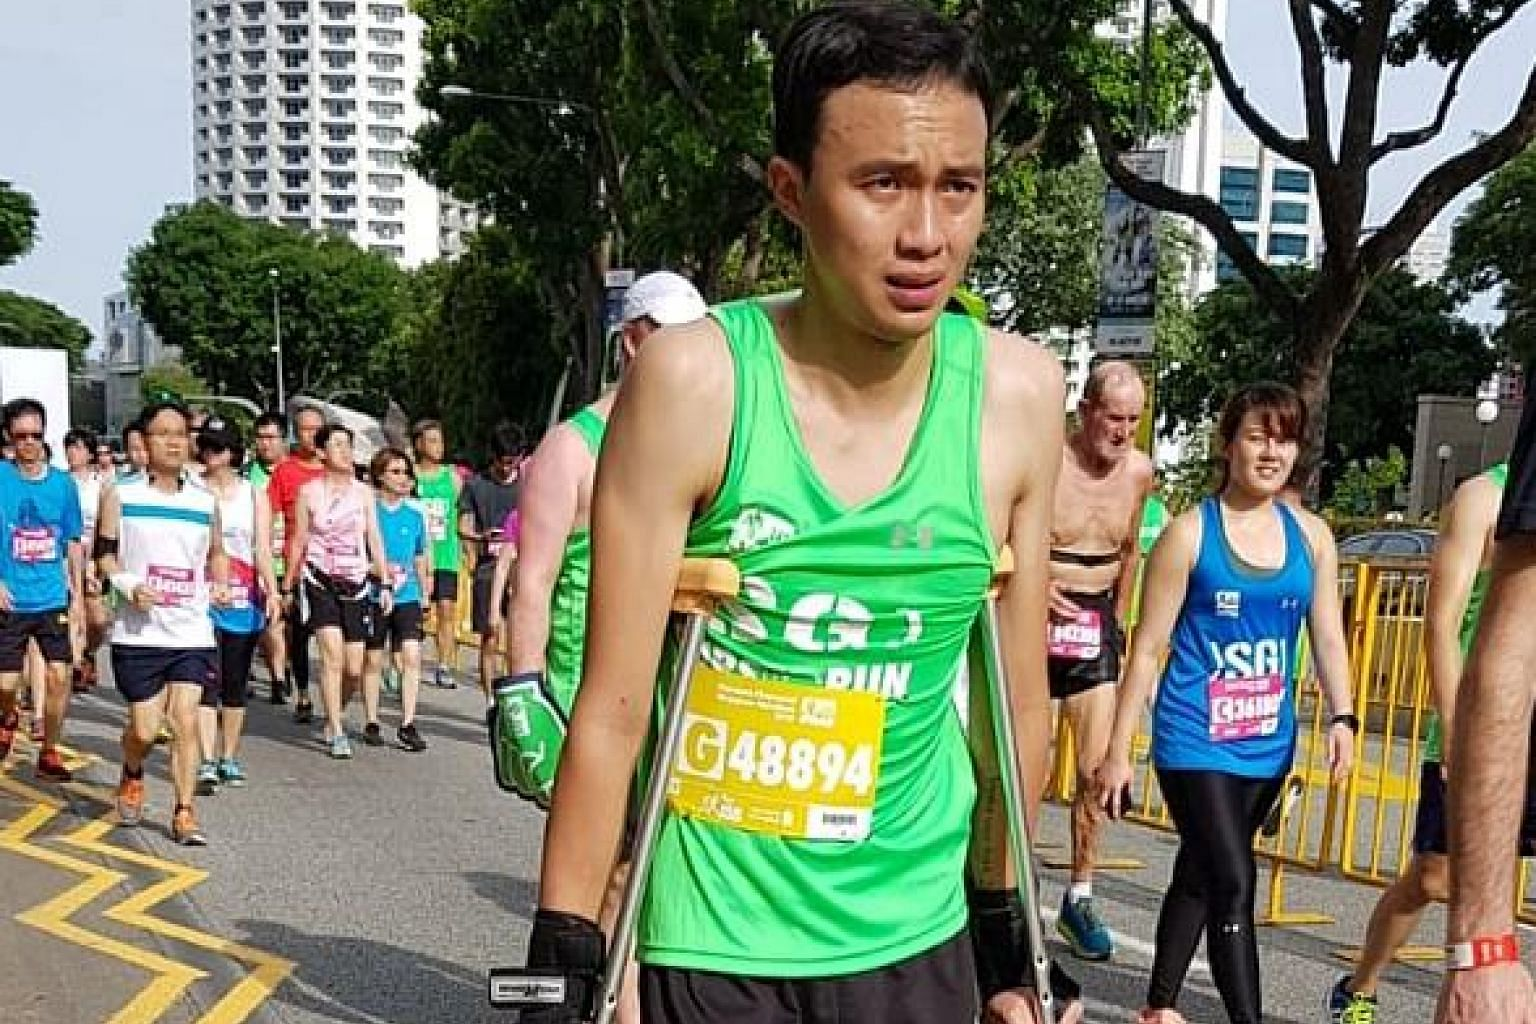 Yeoh Lai Tsin, 22, doing the 5km at last Saturday's Singapore Marathon on crutches, with a piece of paper pinned to his vest seeking donations for Yemen and listing the website of the World Food Programme.